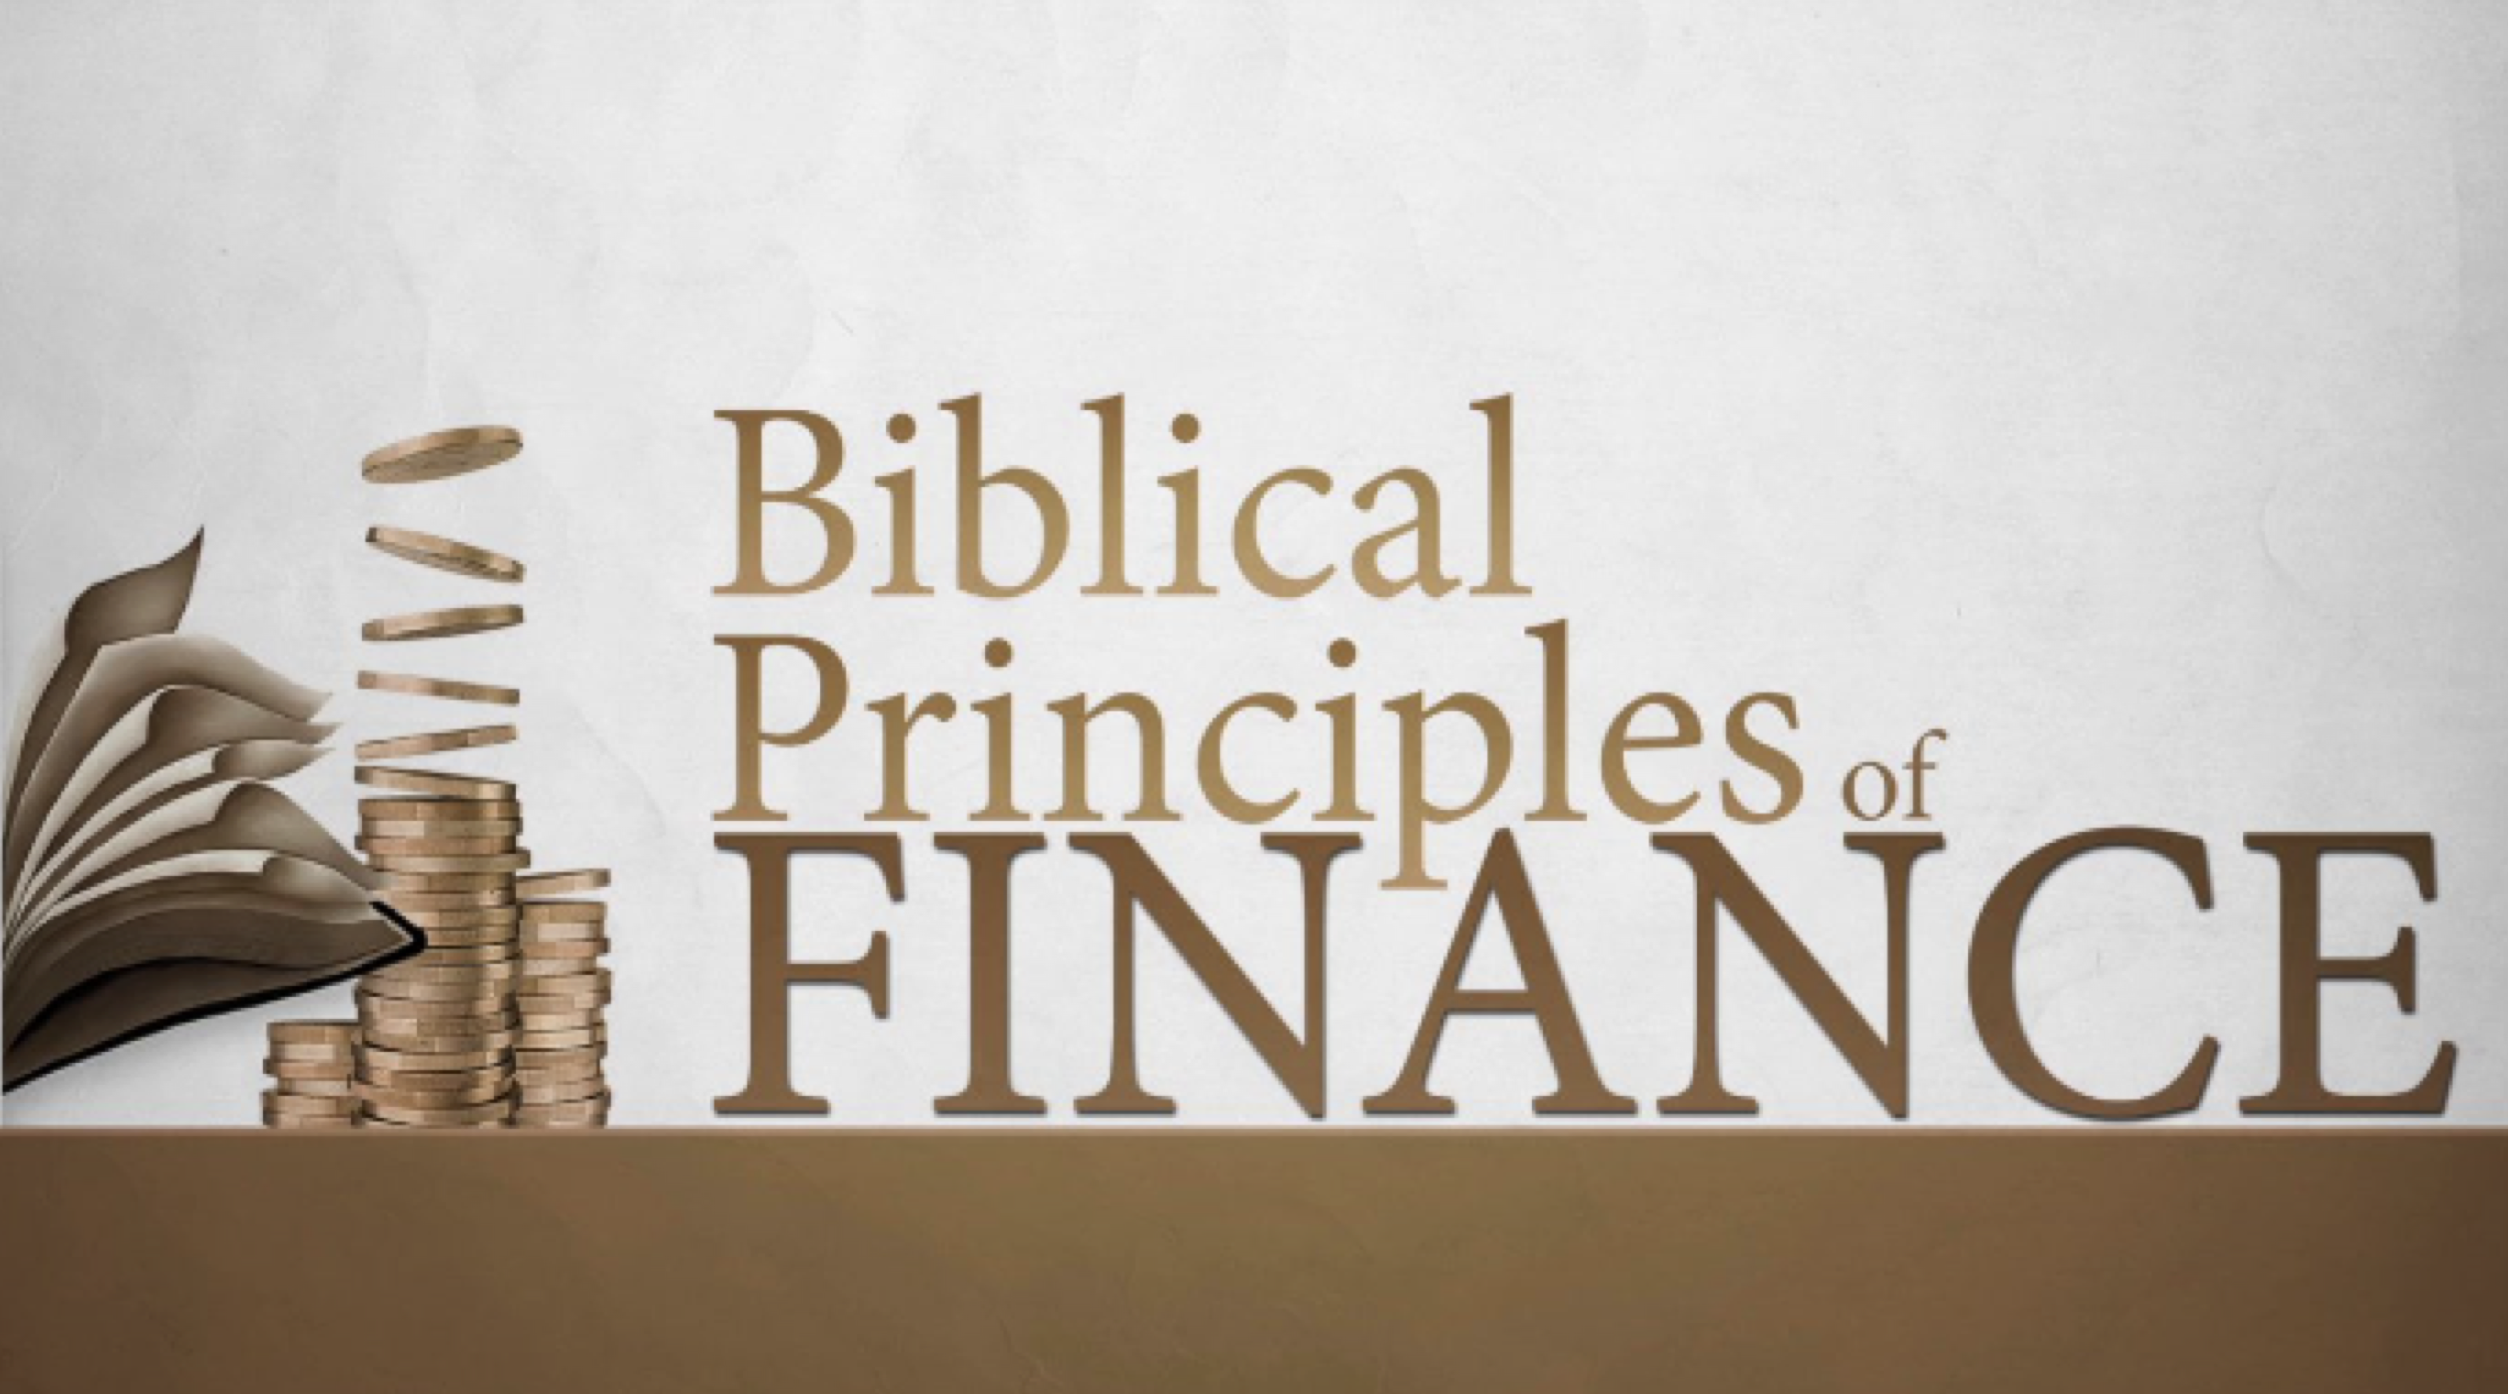 biblical principal The power of living by principle kevin's decision to resist sin and temptation shows the power of living by biblical principles as early as he could remember, kevin had been taught by his parents and others that the bible said, be sure your sin will find you out (num 32:23.